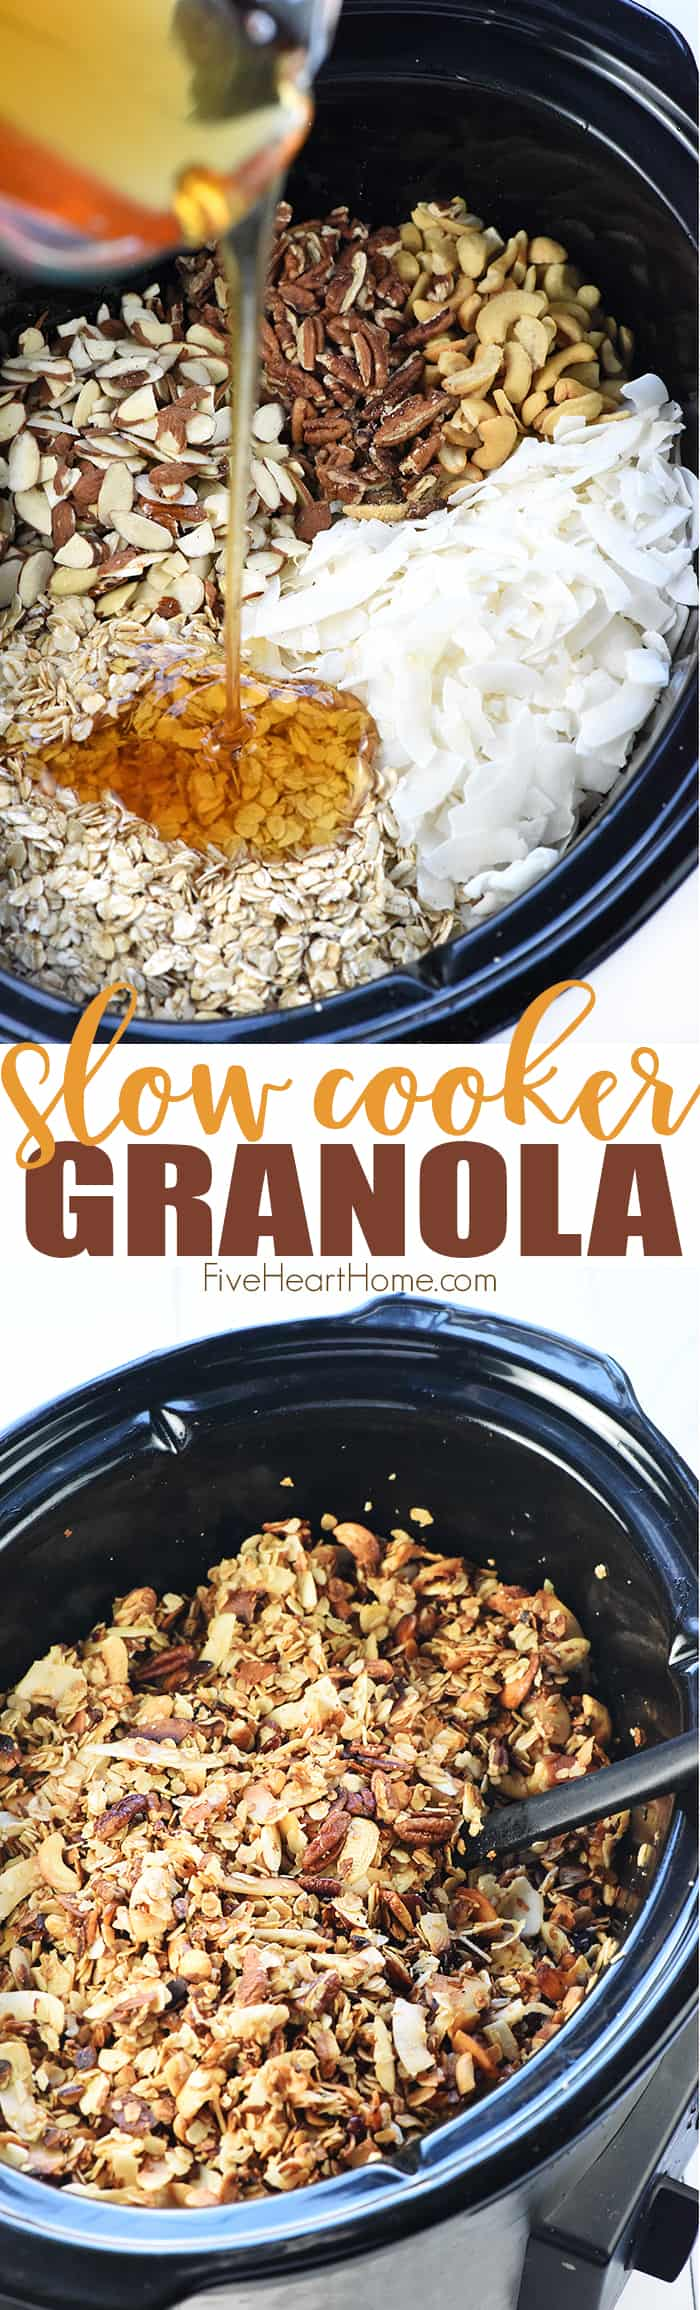 Slow Cooker Granola Collage with Text Overlay